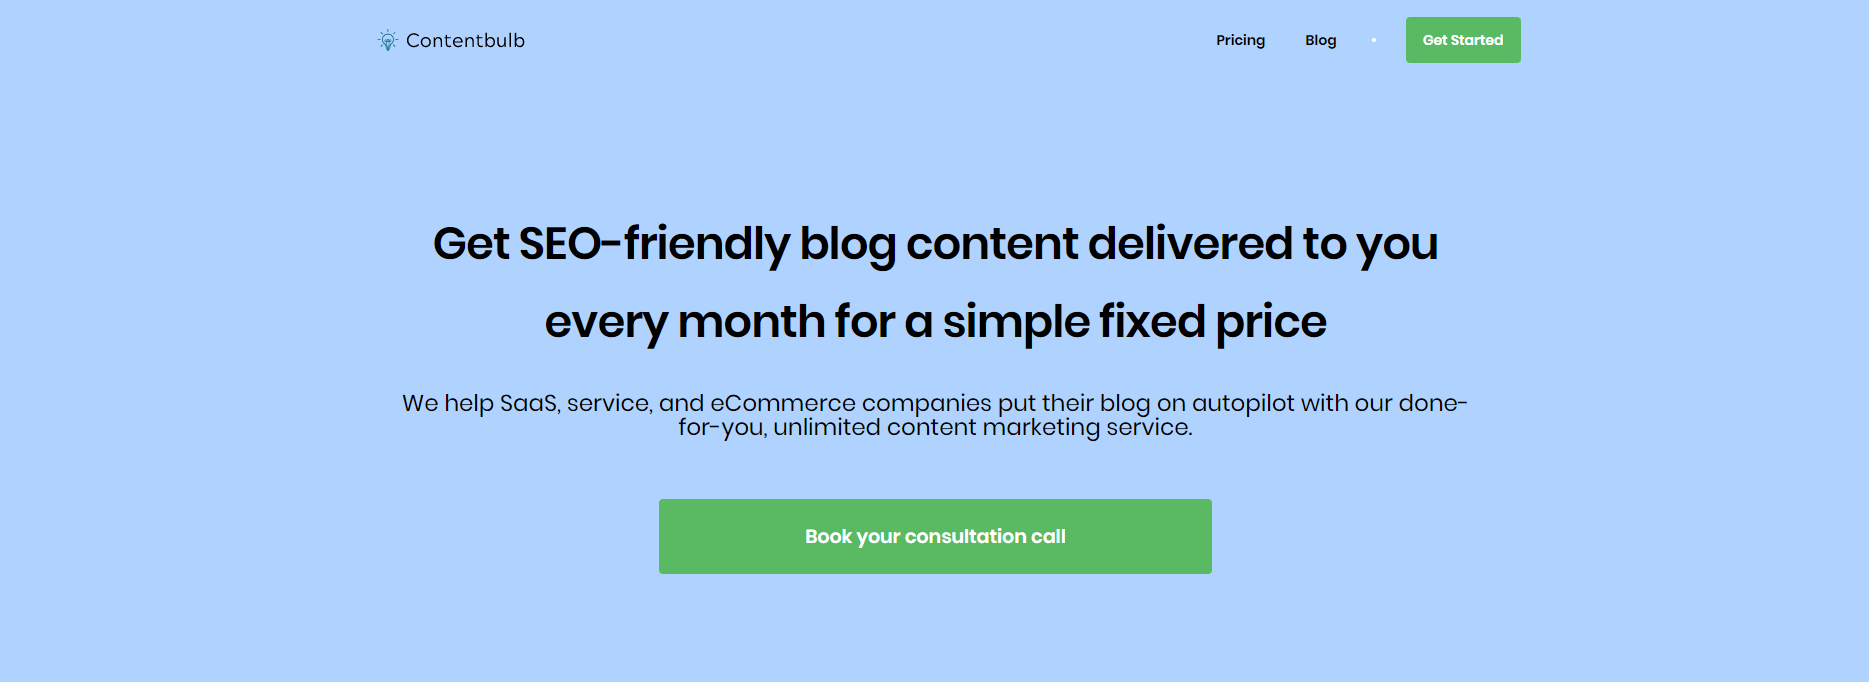 Get competitive content marketing pricing with Contentbulb